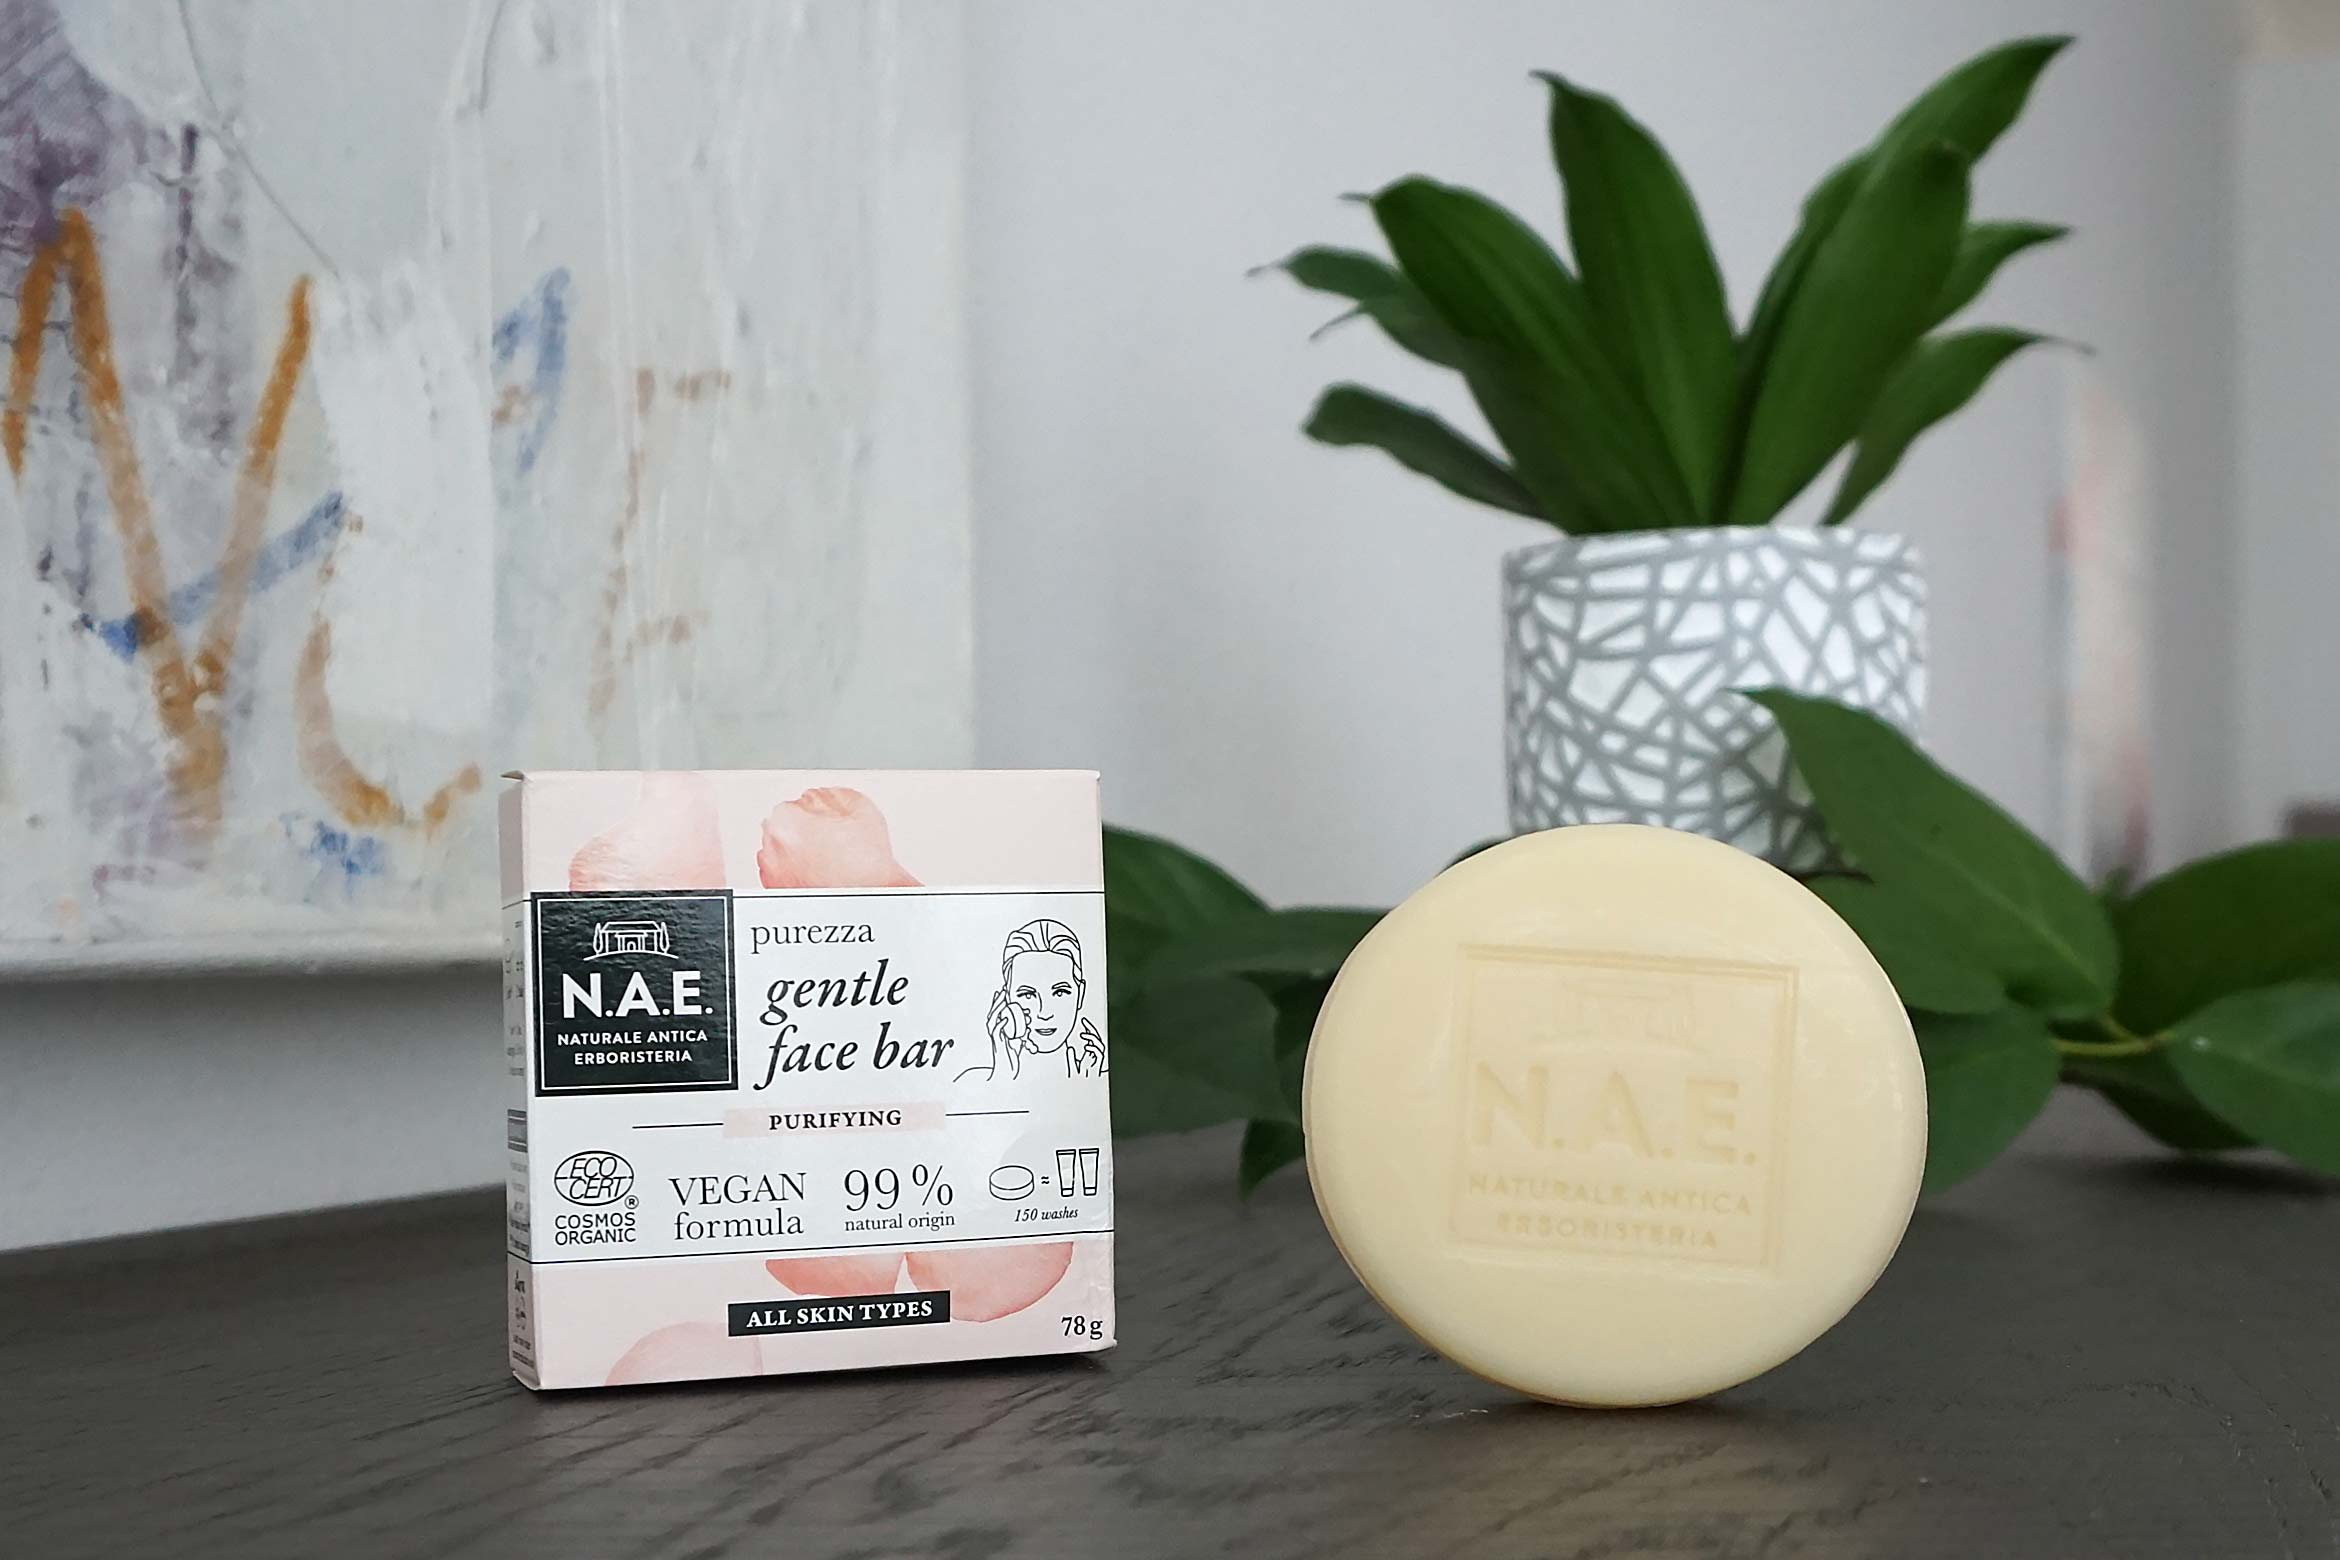 n.a.e. purezza gentle face bar review